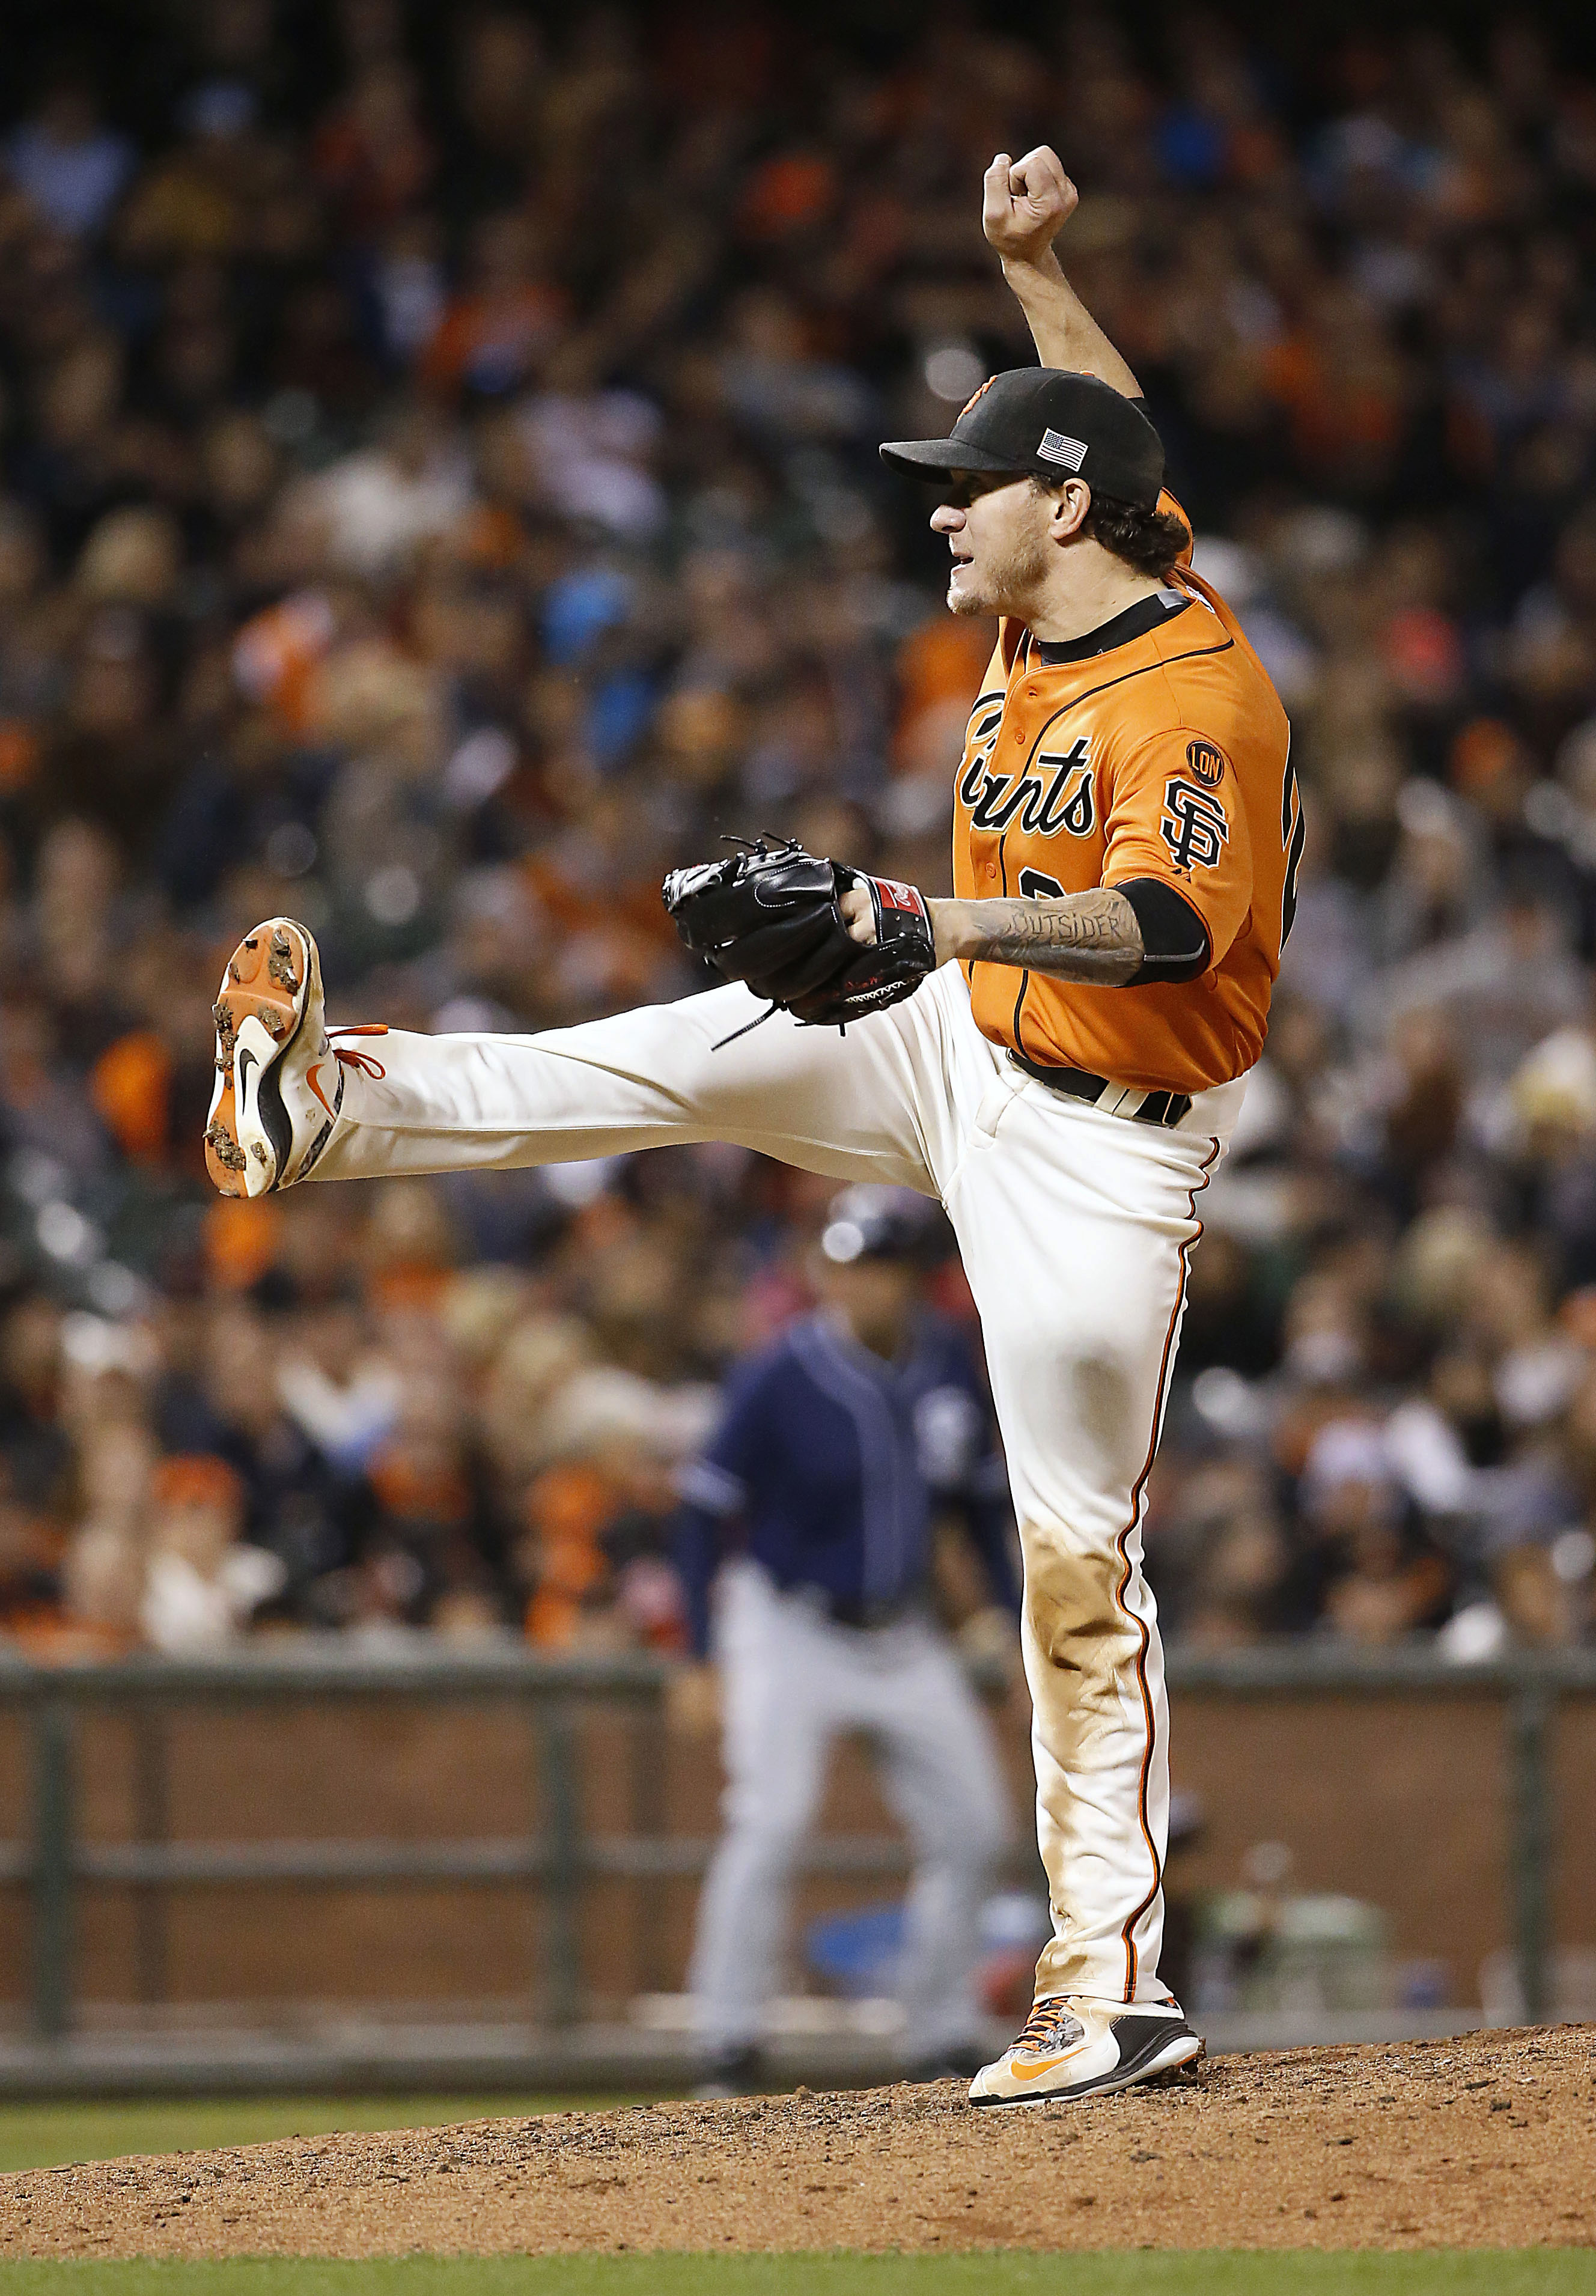 San Francisco Giants pitcher Jake Peavy throws to the San Diego Padres during the seventh inning of a baseball game, Friday, Sept. 11, 2015, in San Francisco. (AP Photo/Tony Avelar)